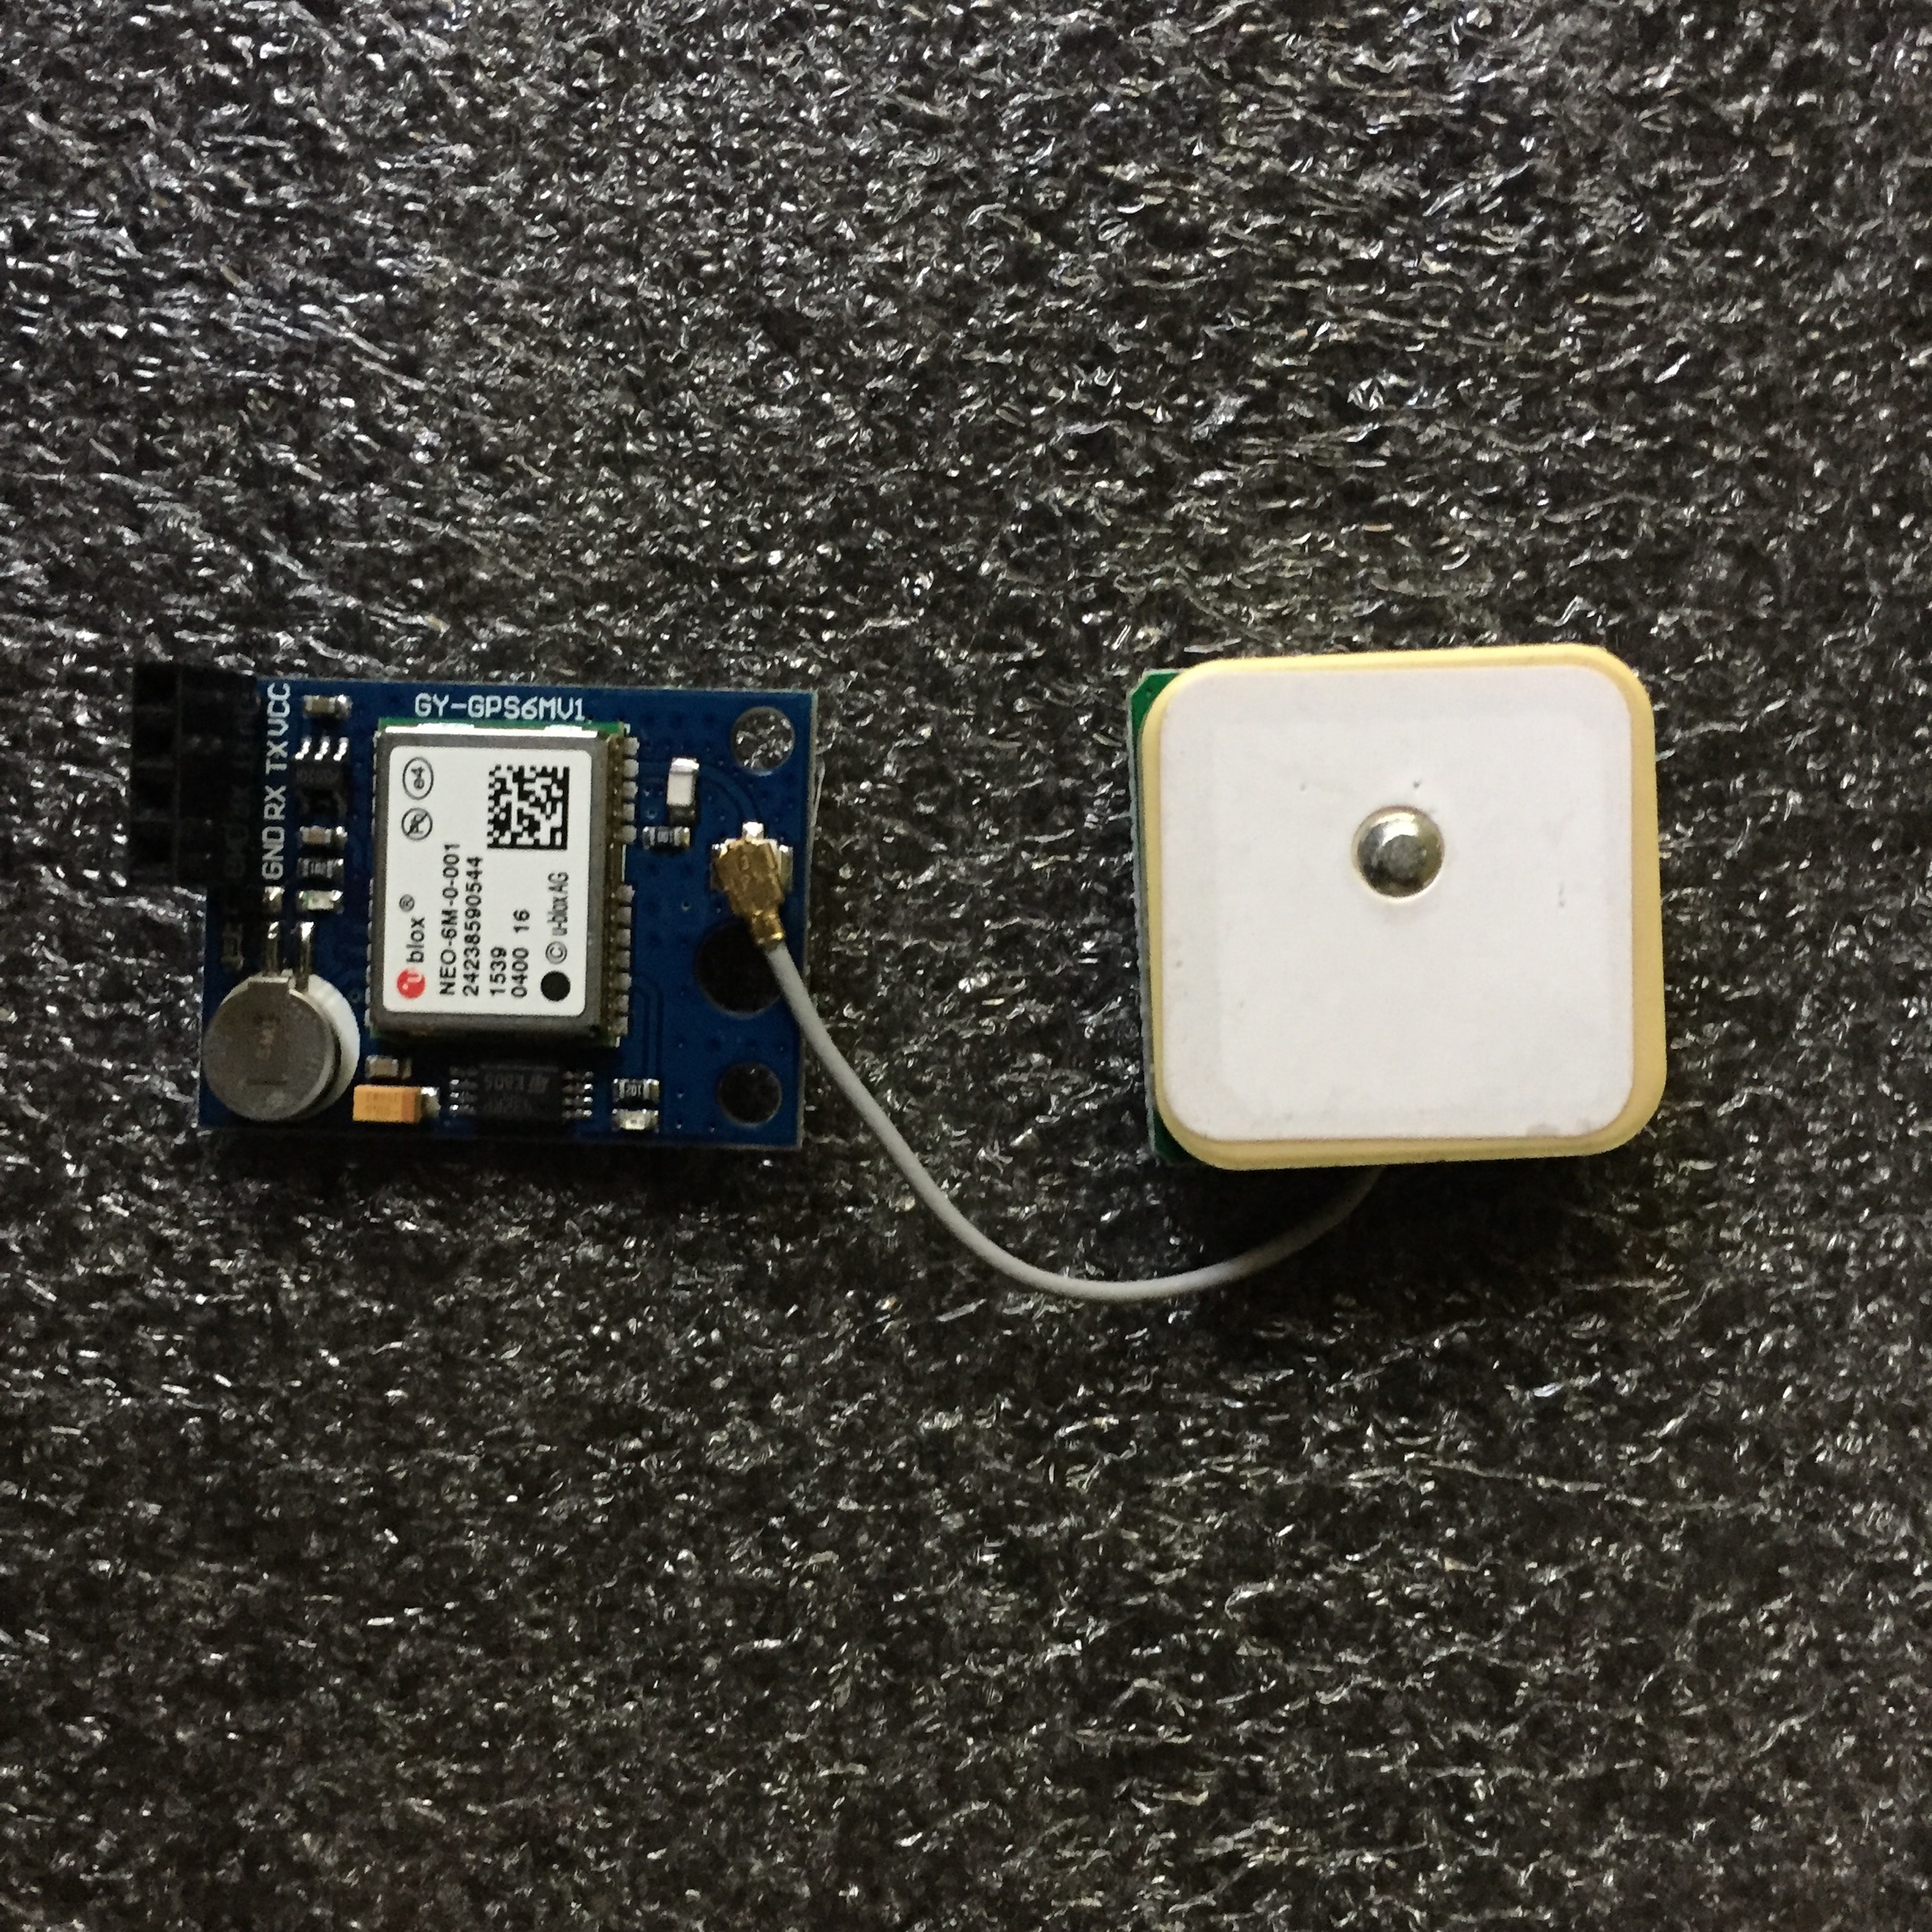 Gps Wifi Sensor Horacio Bouzas Va6dtx Tx Should Be Connected To Microcontroller And Rx Module The Caviat Here Is That Connection Needs Made Via Serial Which Makes It A Bit Trickier But Nevertheless Straightforward